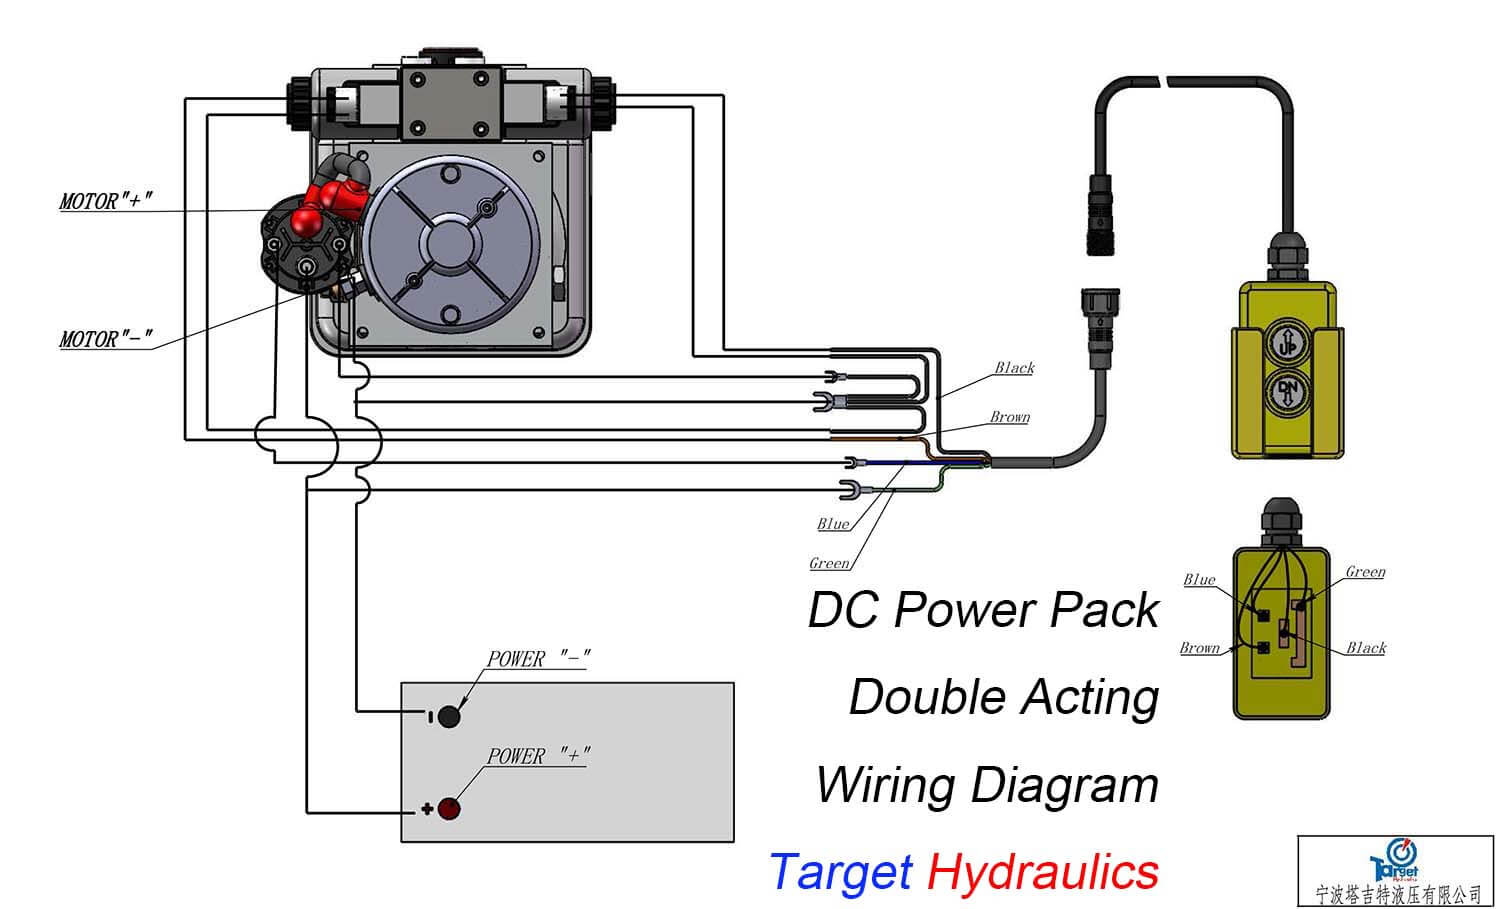 How to Wire_DC Motor Double Acting Power Pack how to wire hydraulic power pack,power unit diagram design Residential Electrical Wiring Diagrams at edmiracle.co